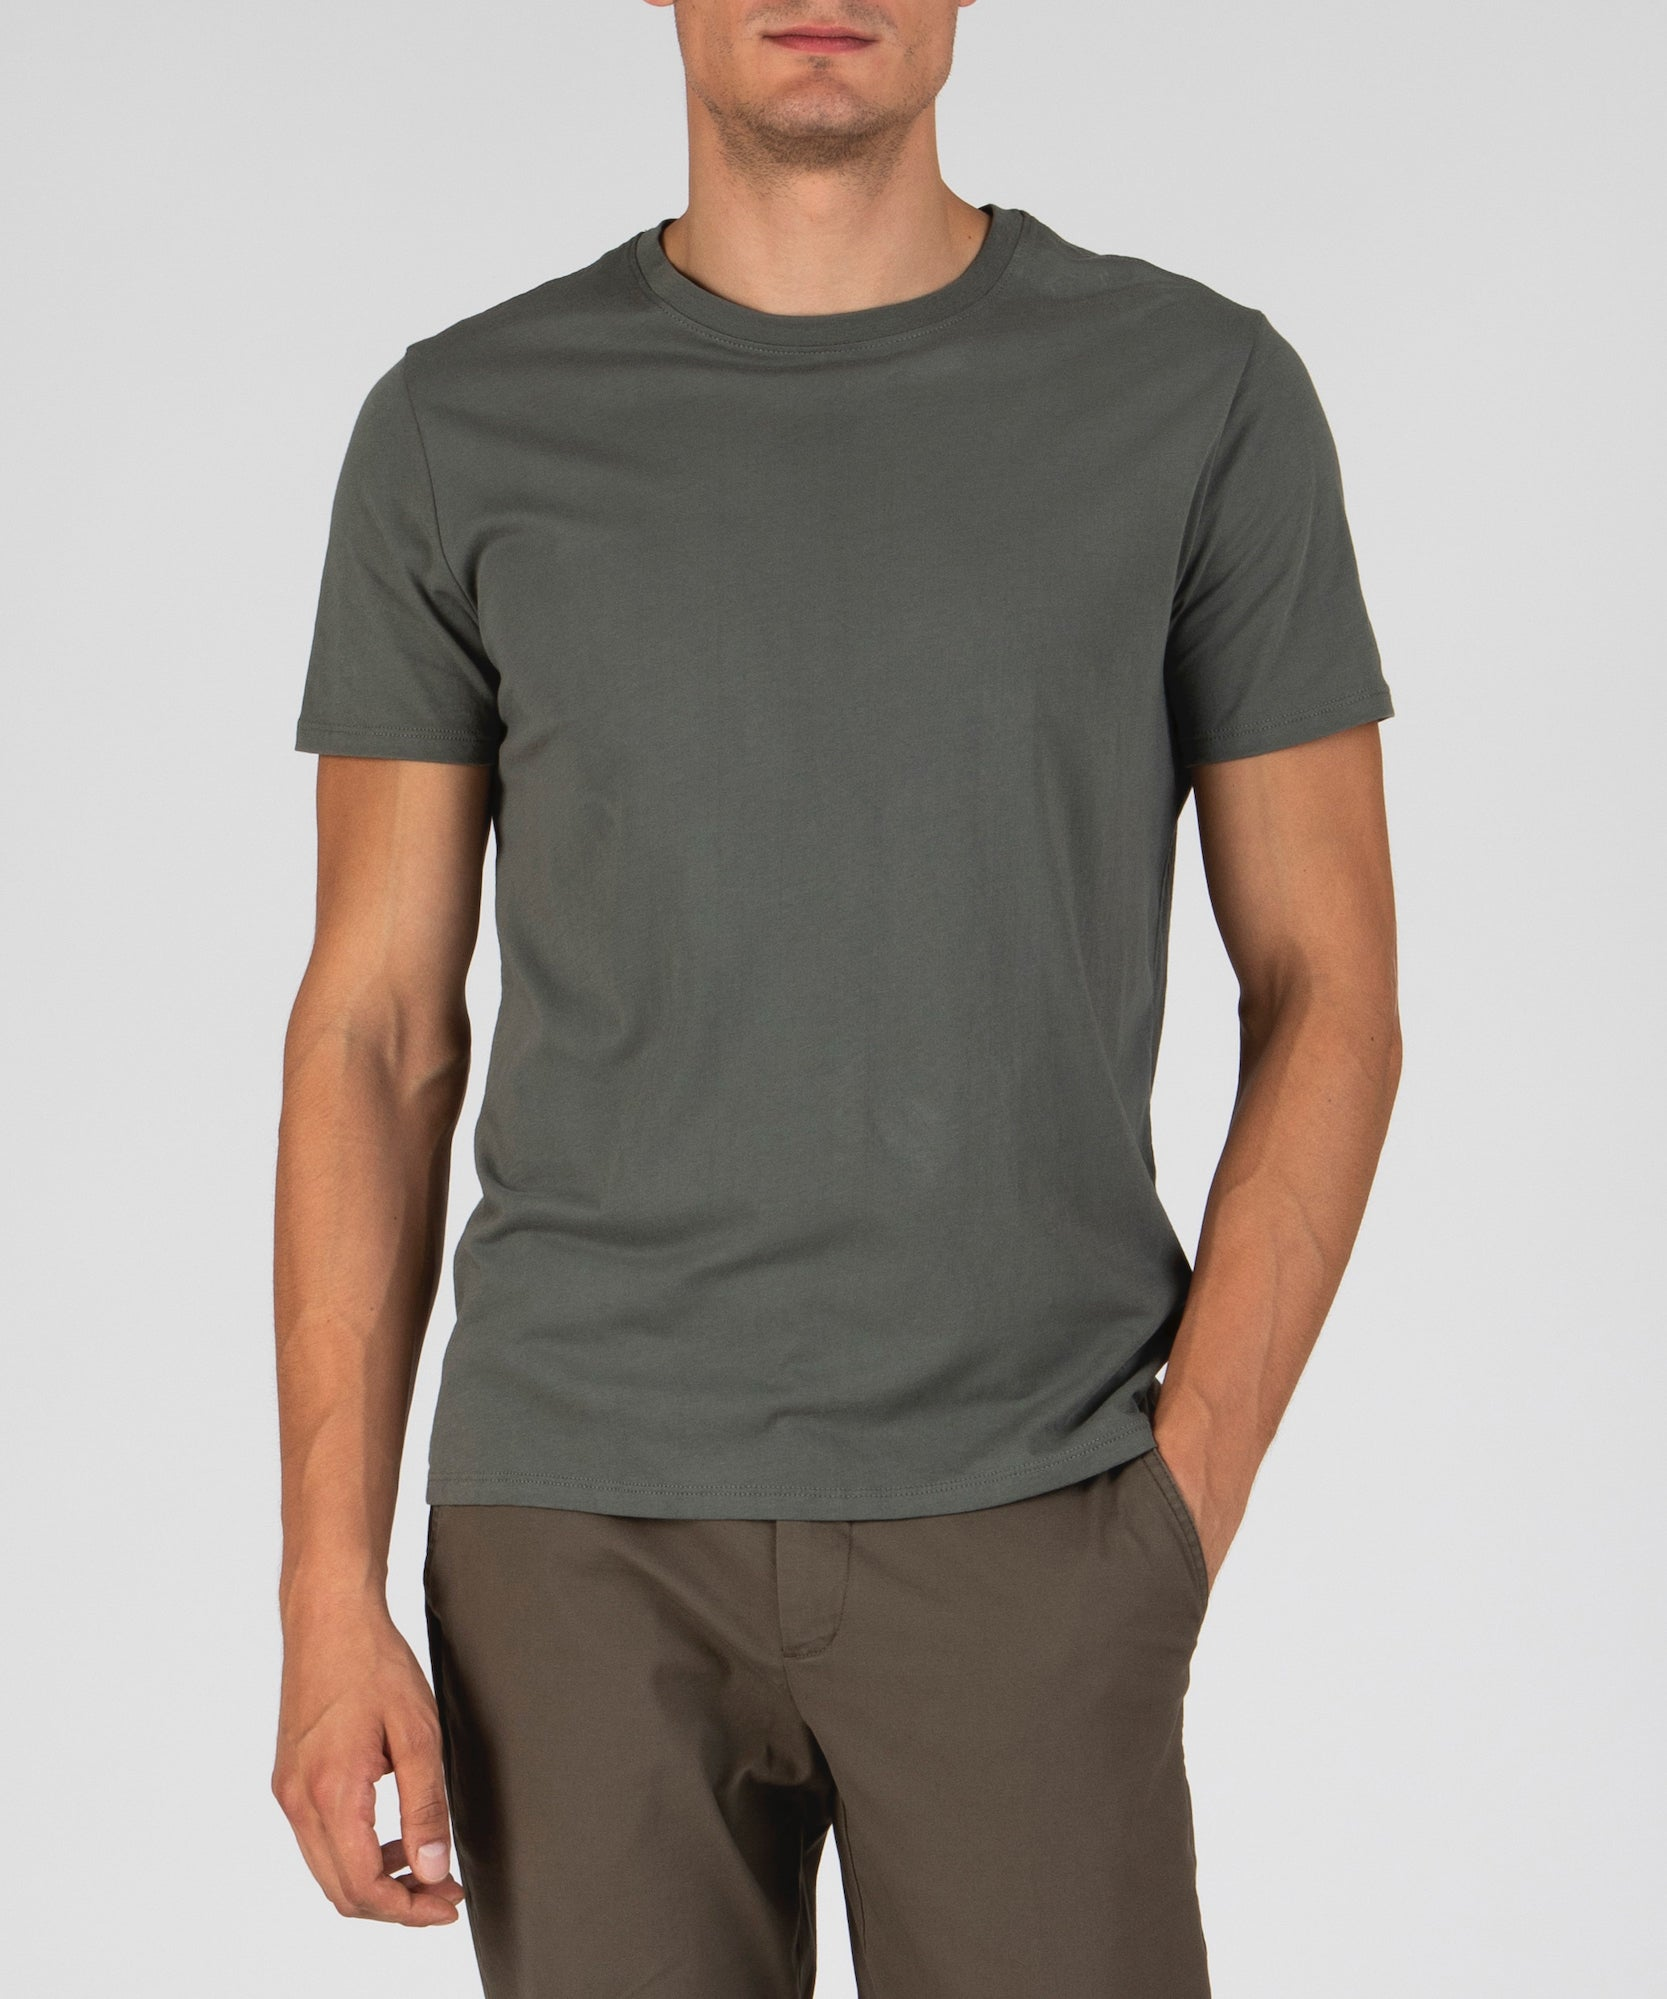 Olive Drab Classic Jersey Crew Neck Tee - Men's Cotton Short Sleeve Tee by ATM Anthony Thomas Melillo